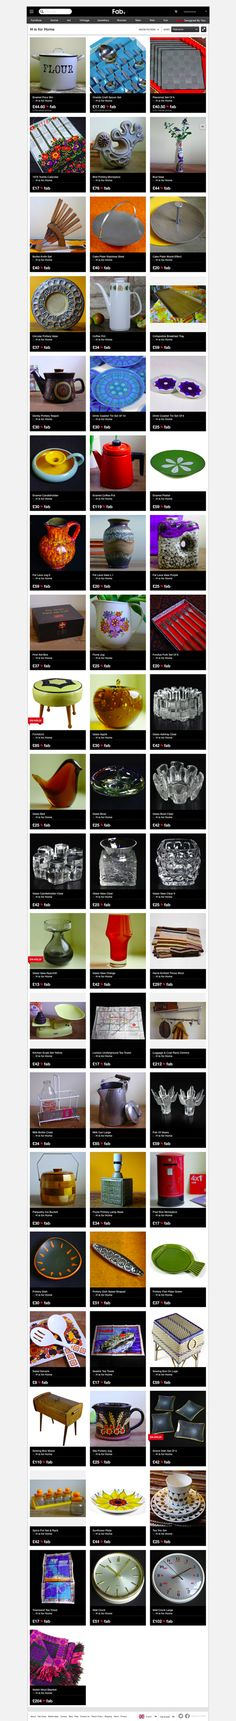 H is for Home @Fab sale II